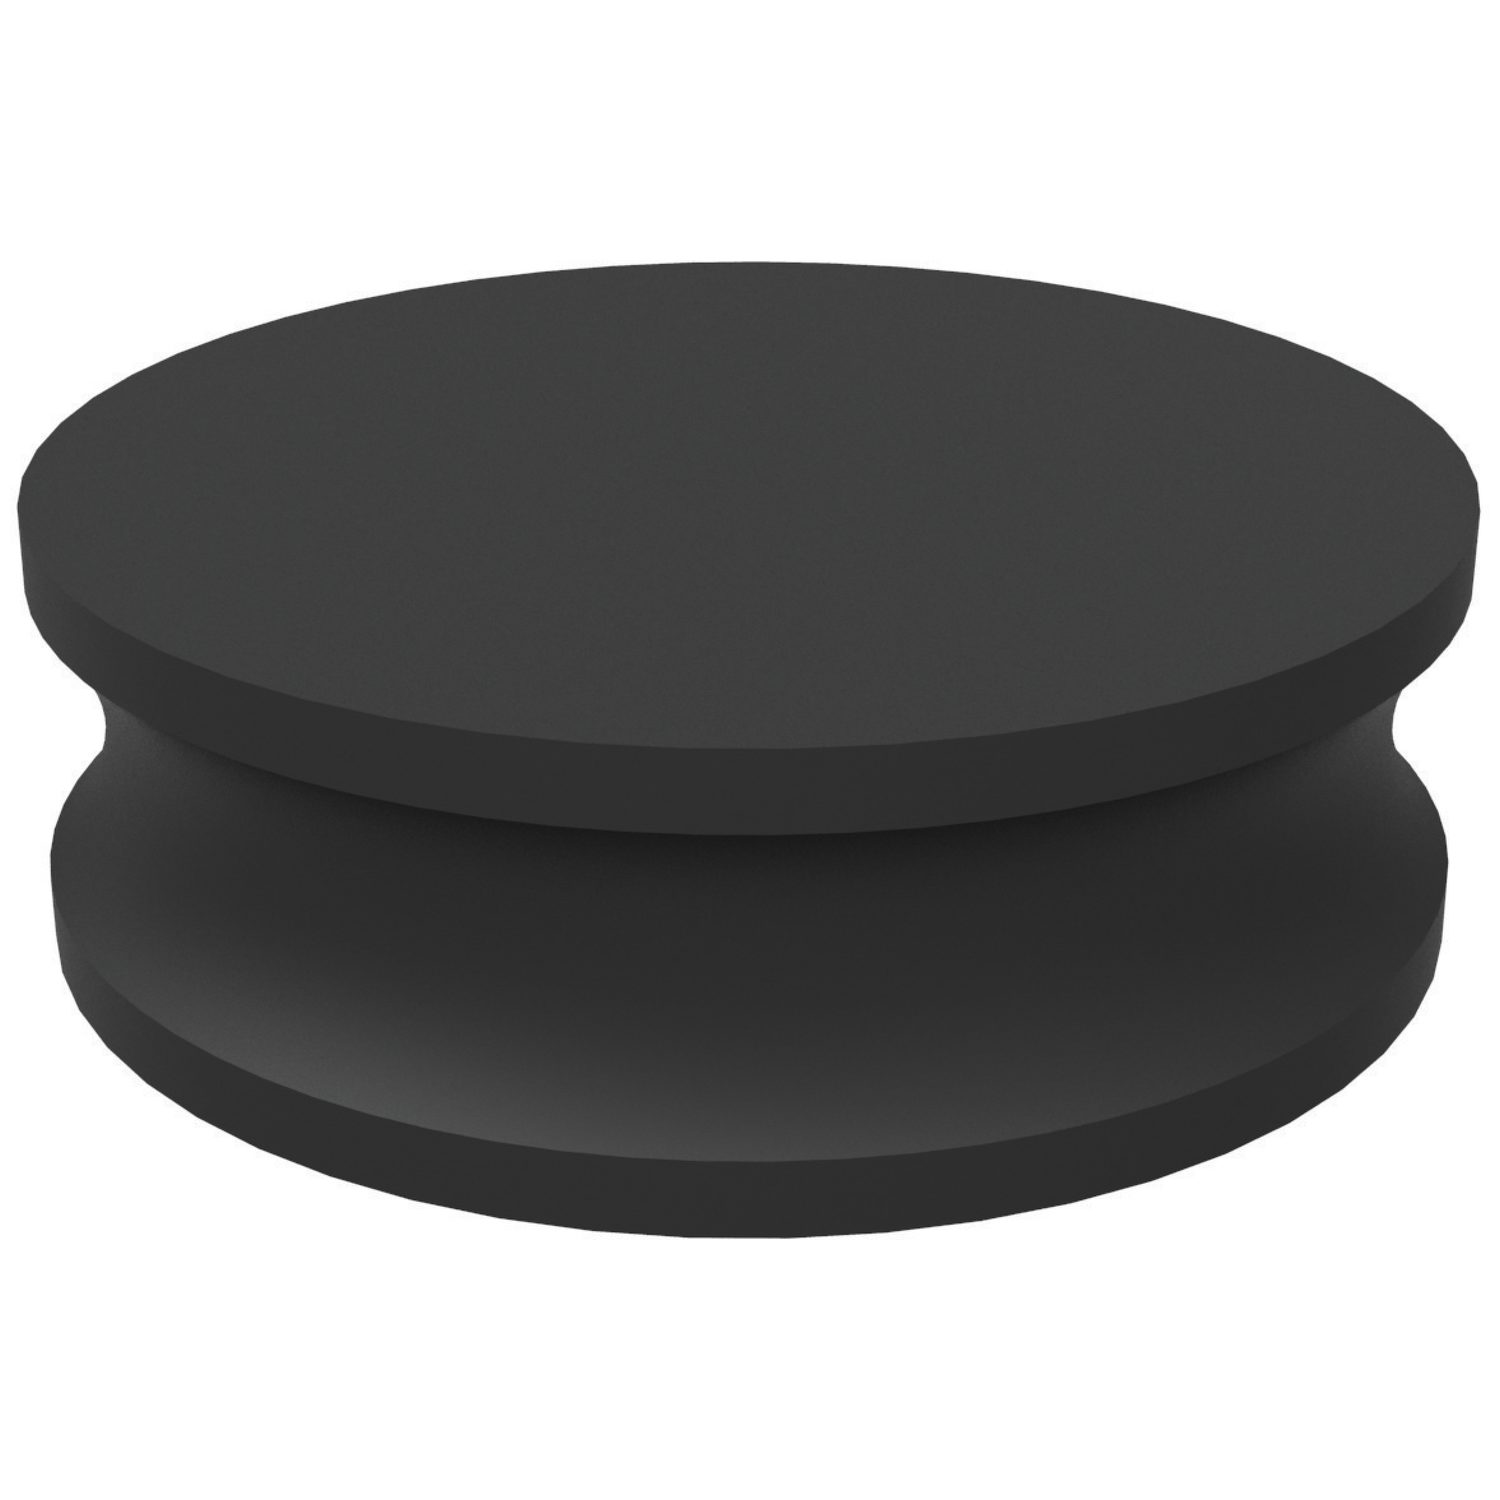 P2052 - Rubber Pads